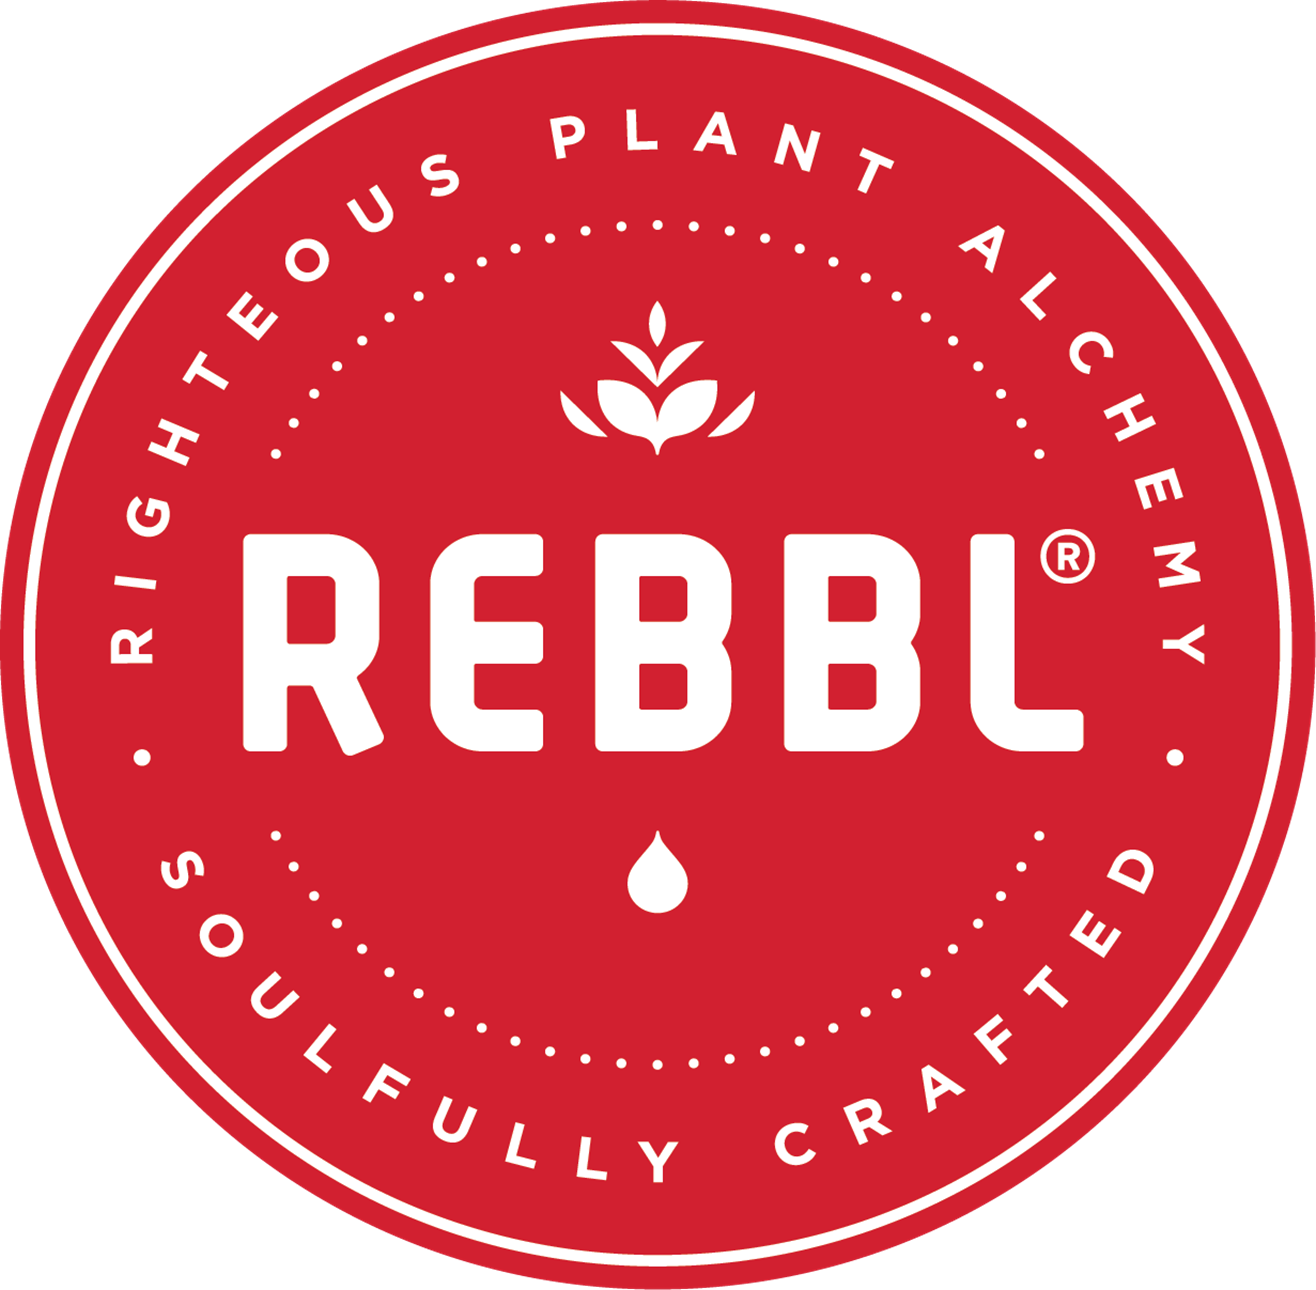 REBBL-Logo-USE-THIS-ONE.png